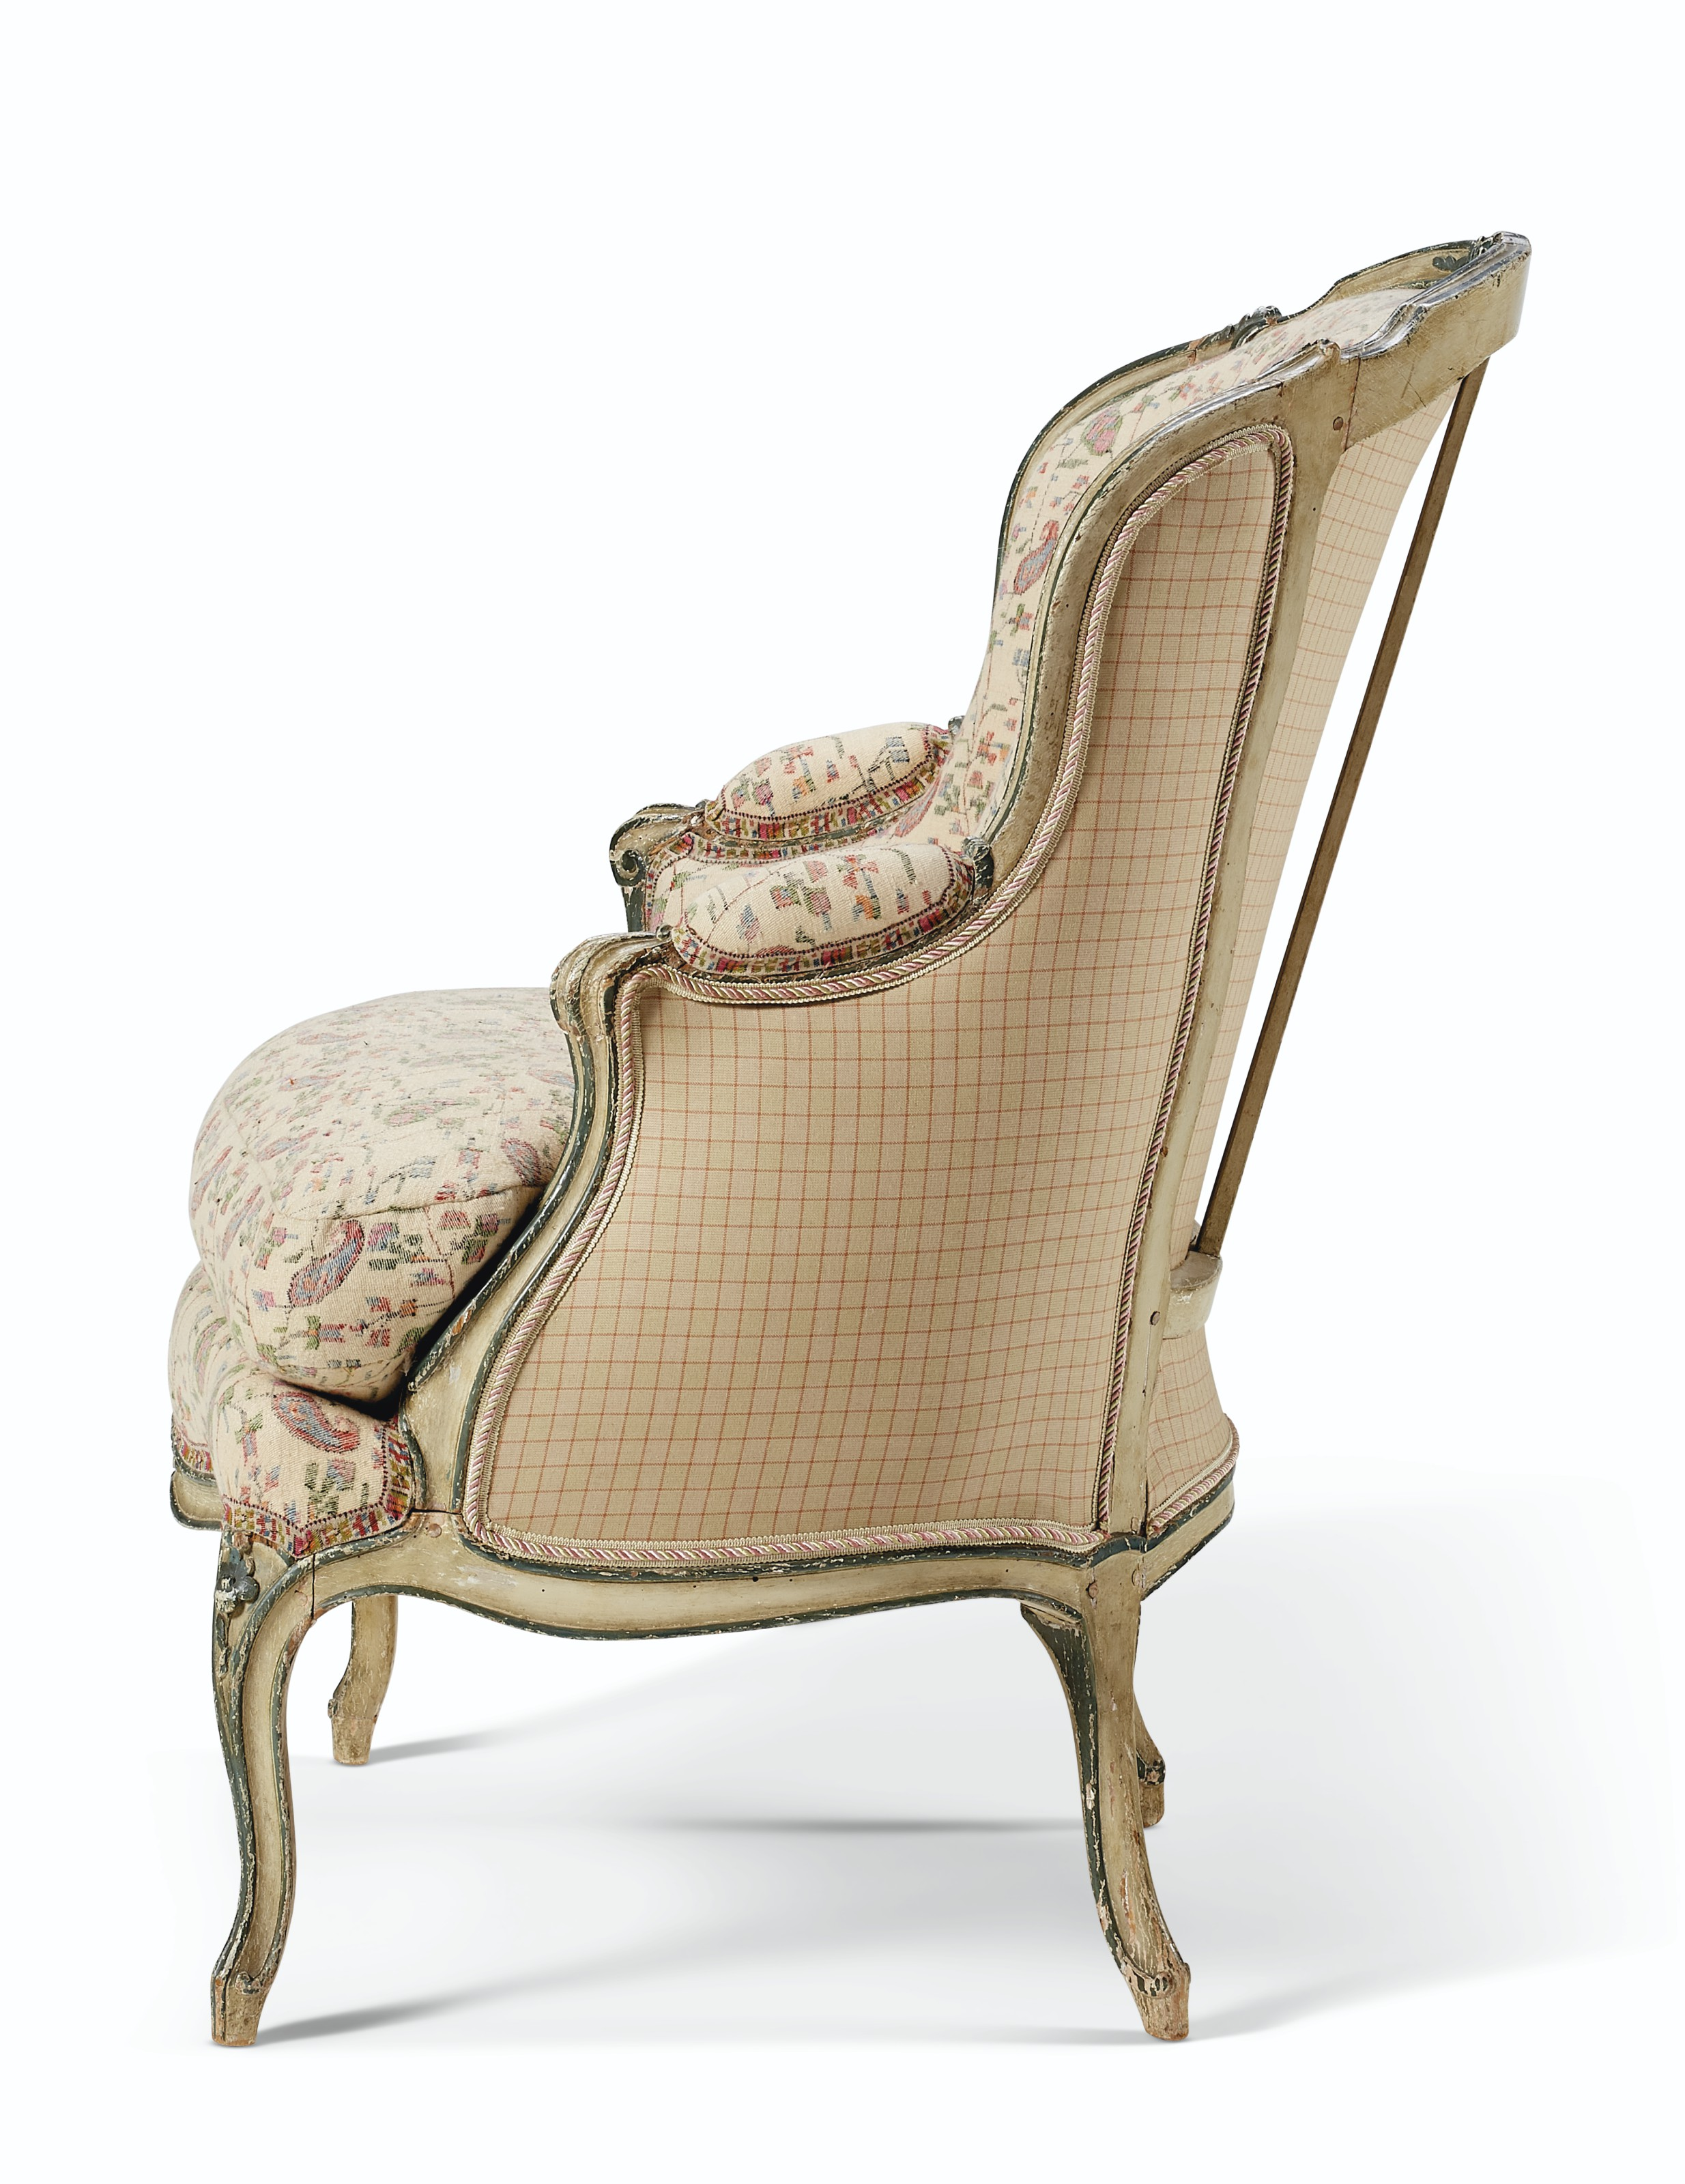 A LOUIS XV GREEN AND WHITE-PAINTED BERGÈRE